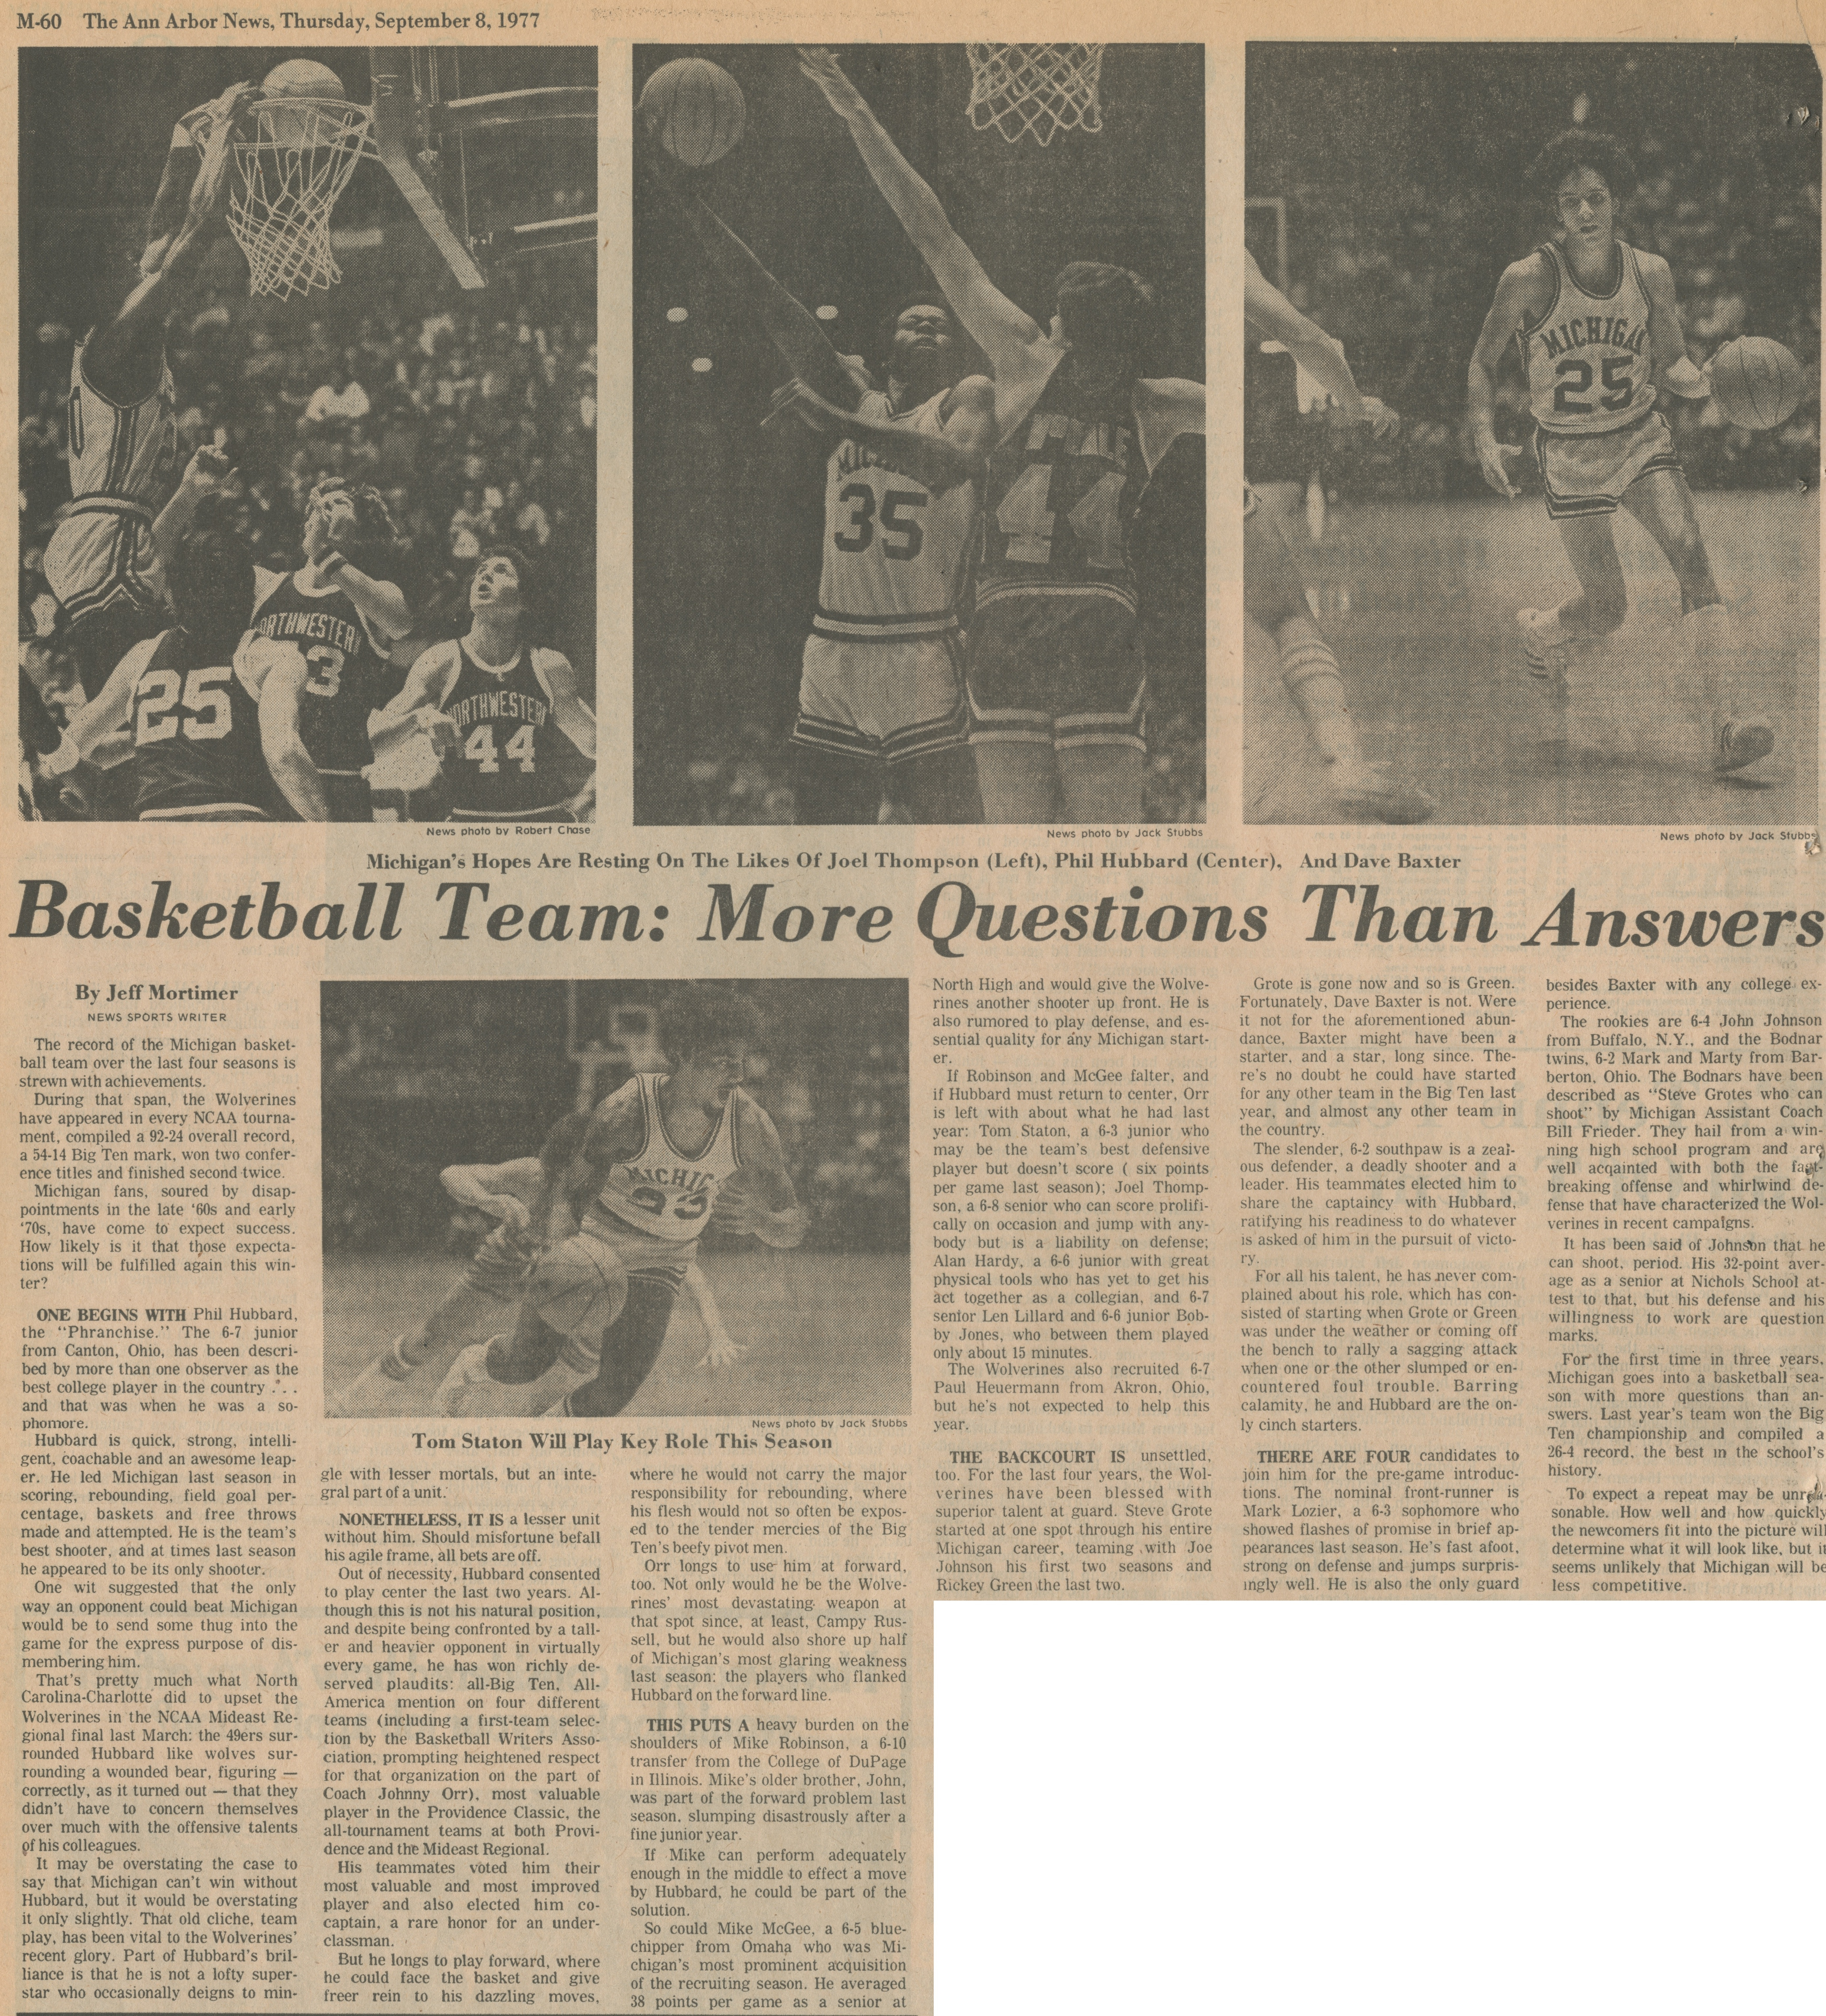 Basketball Team: More Questions Than Answers image